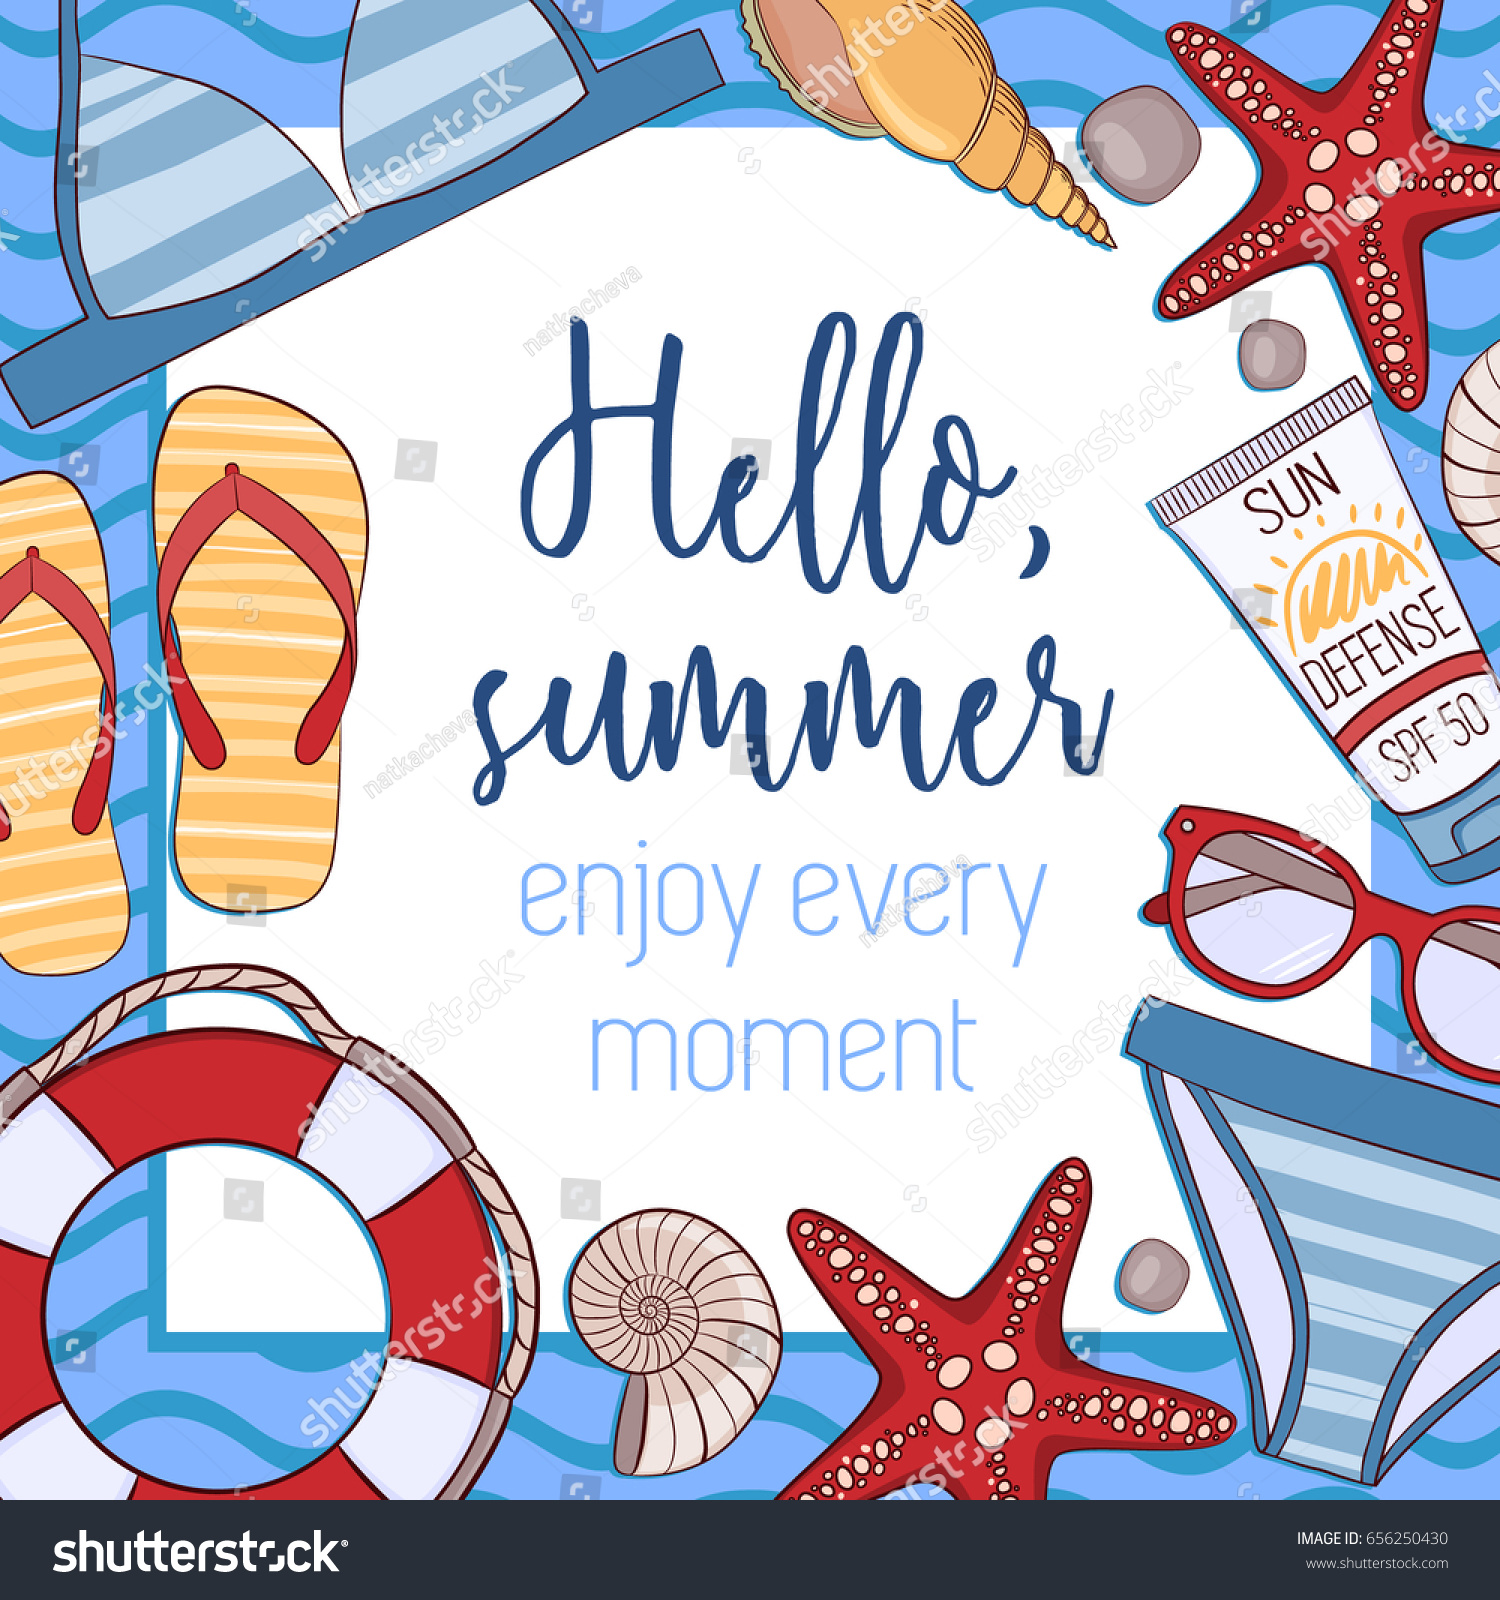 Hello, Summer! Enjoy Every Moment. Summer Holidays And Beach Vacation  Vector Illustration For